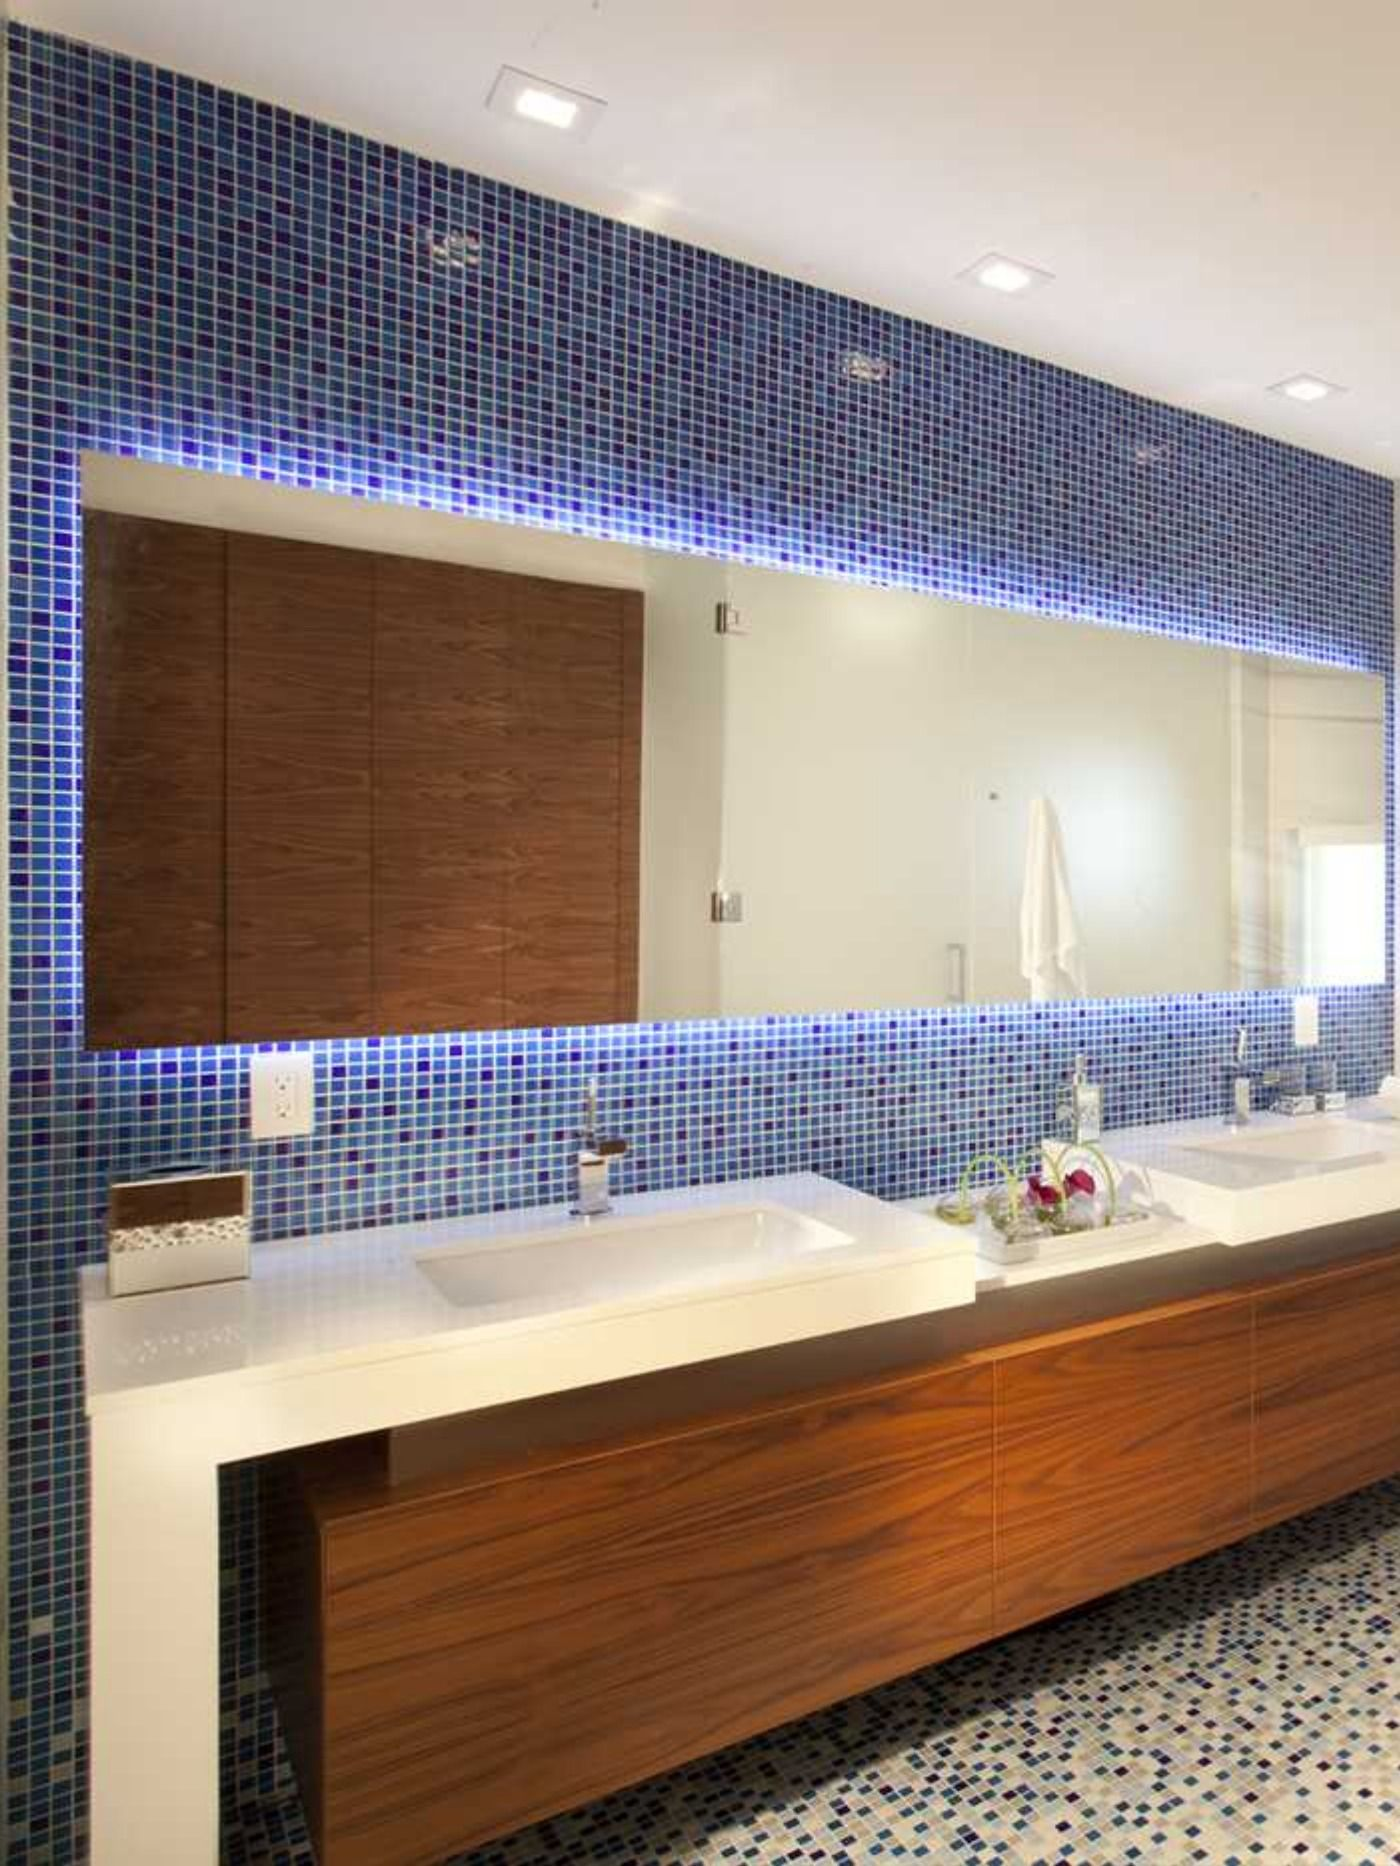 Miami Excellence (With images) | Bathroom renovation ...